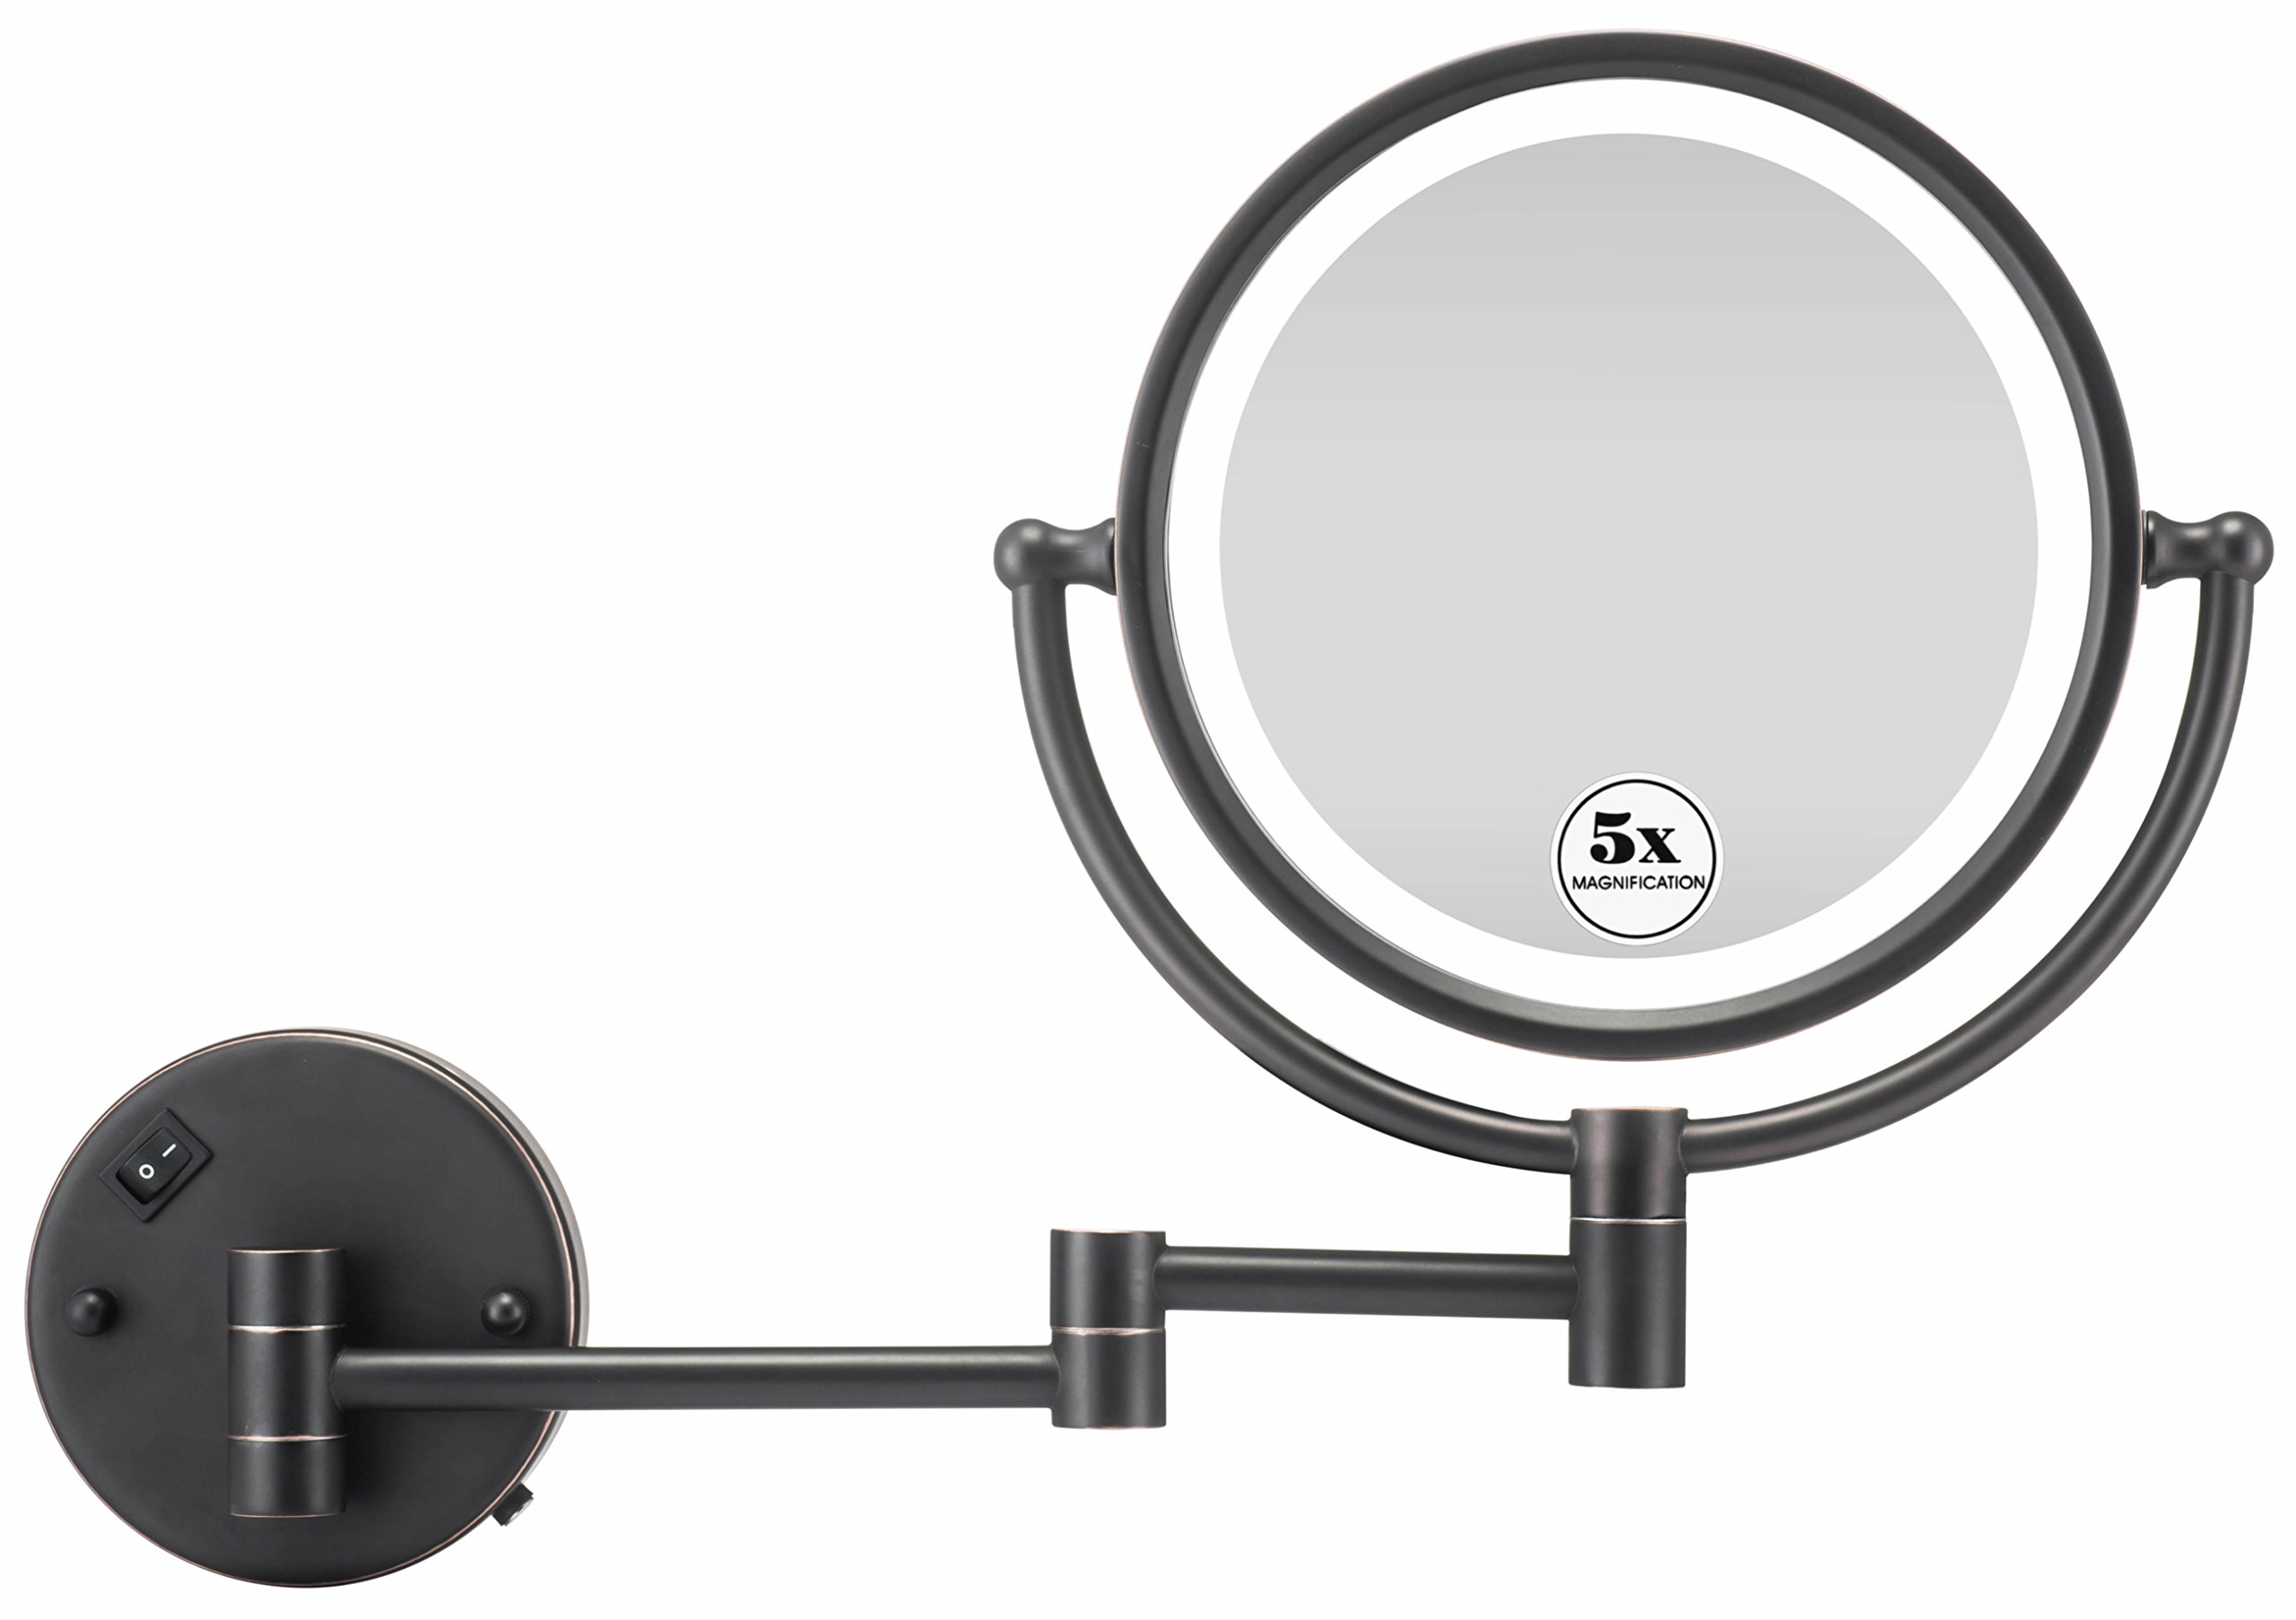 GloRiastar Makeup Mirror Wall Mount LED Lighted with 5X Magnification,Oil-Rubbed Bronze Finish, 8-Inch